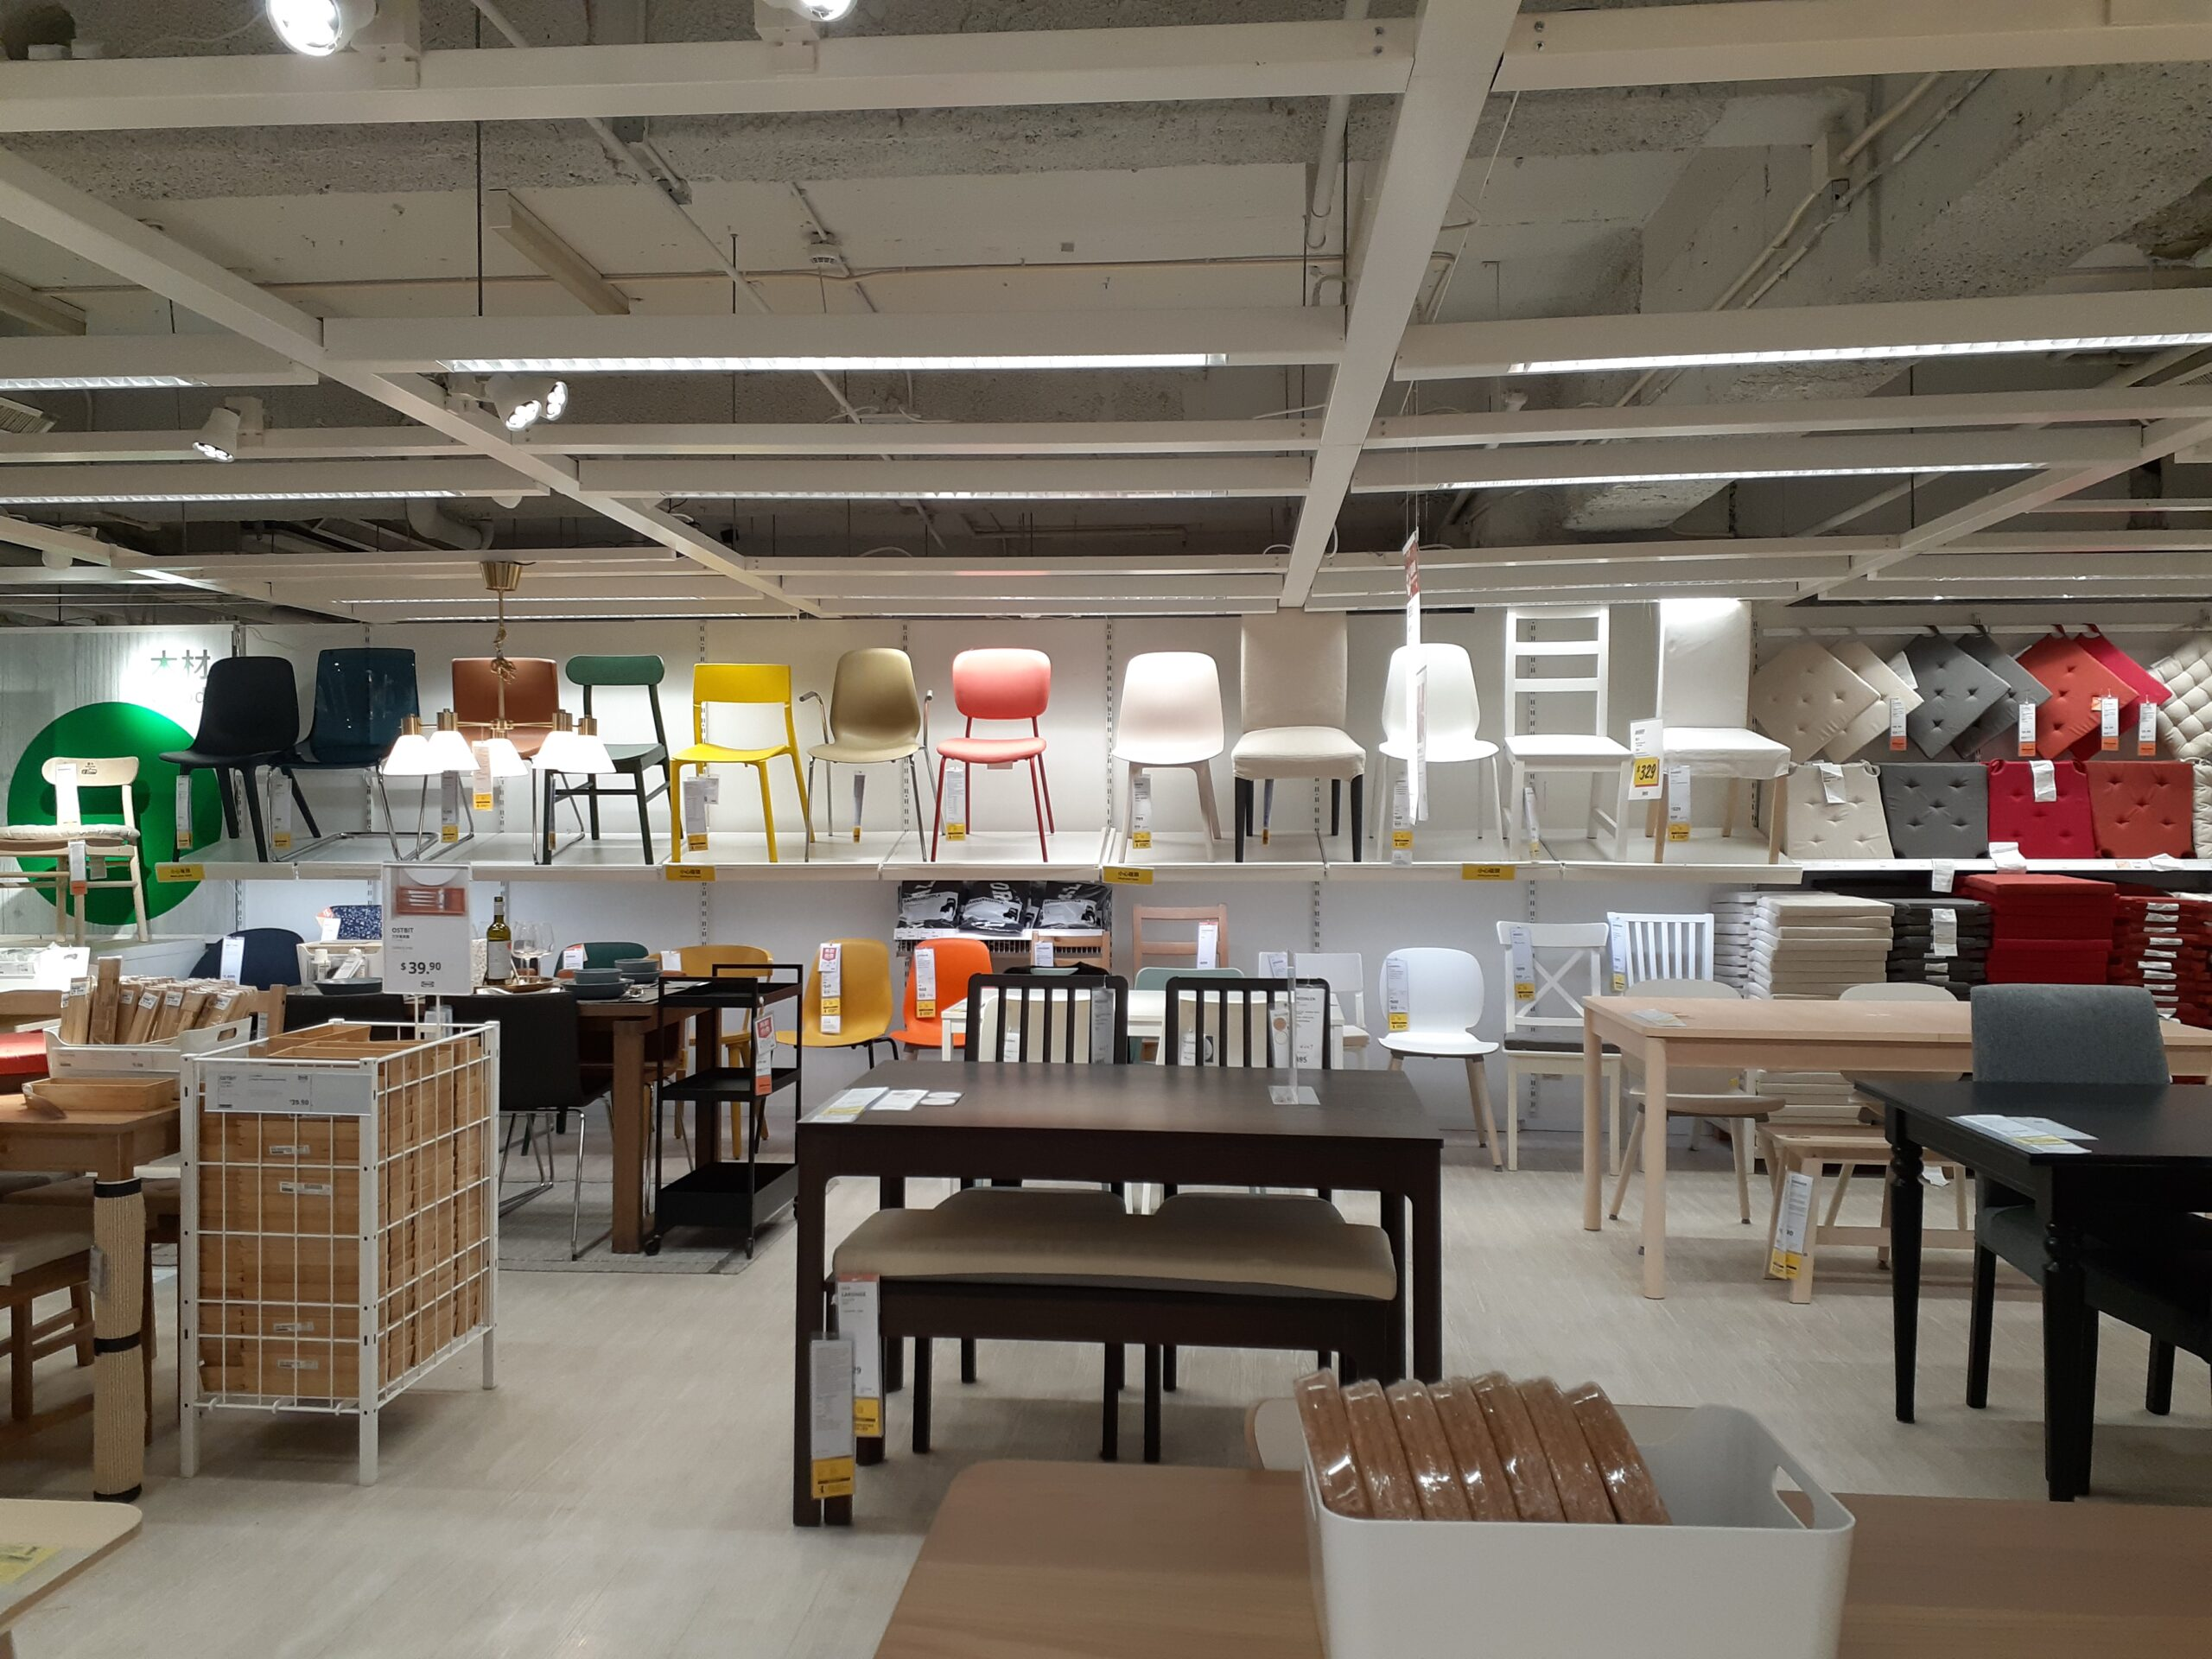 IKEA chairs and tables